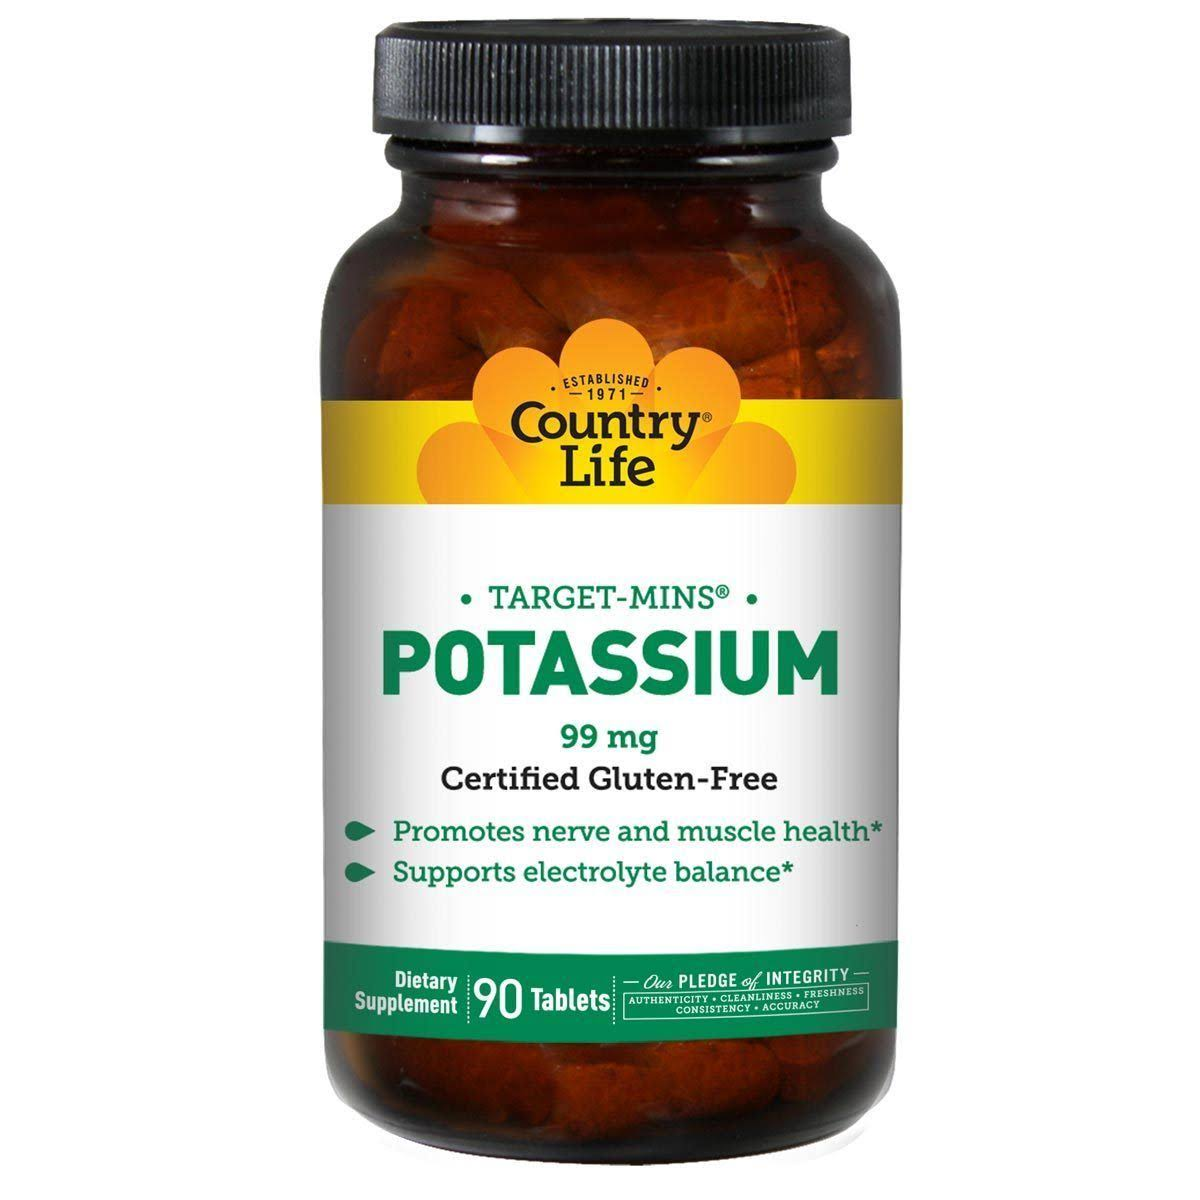 Country Life Target-Mins Potassium - 90 Tablets, 99mg